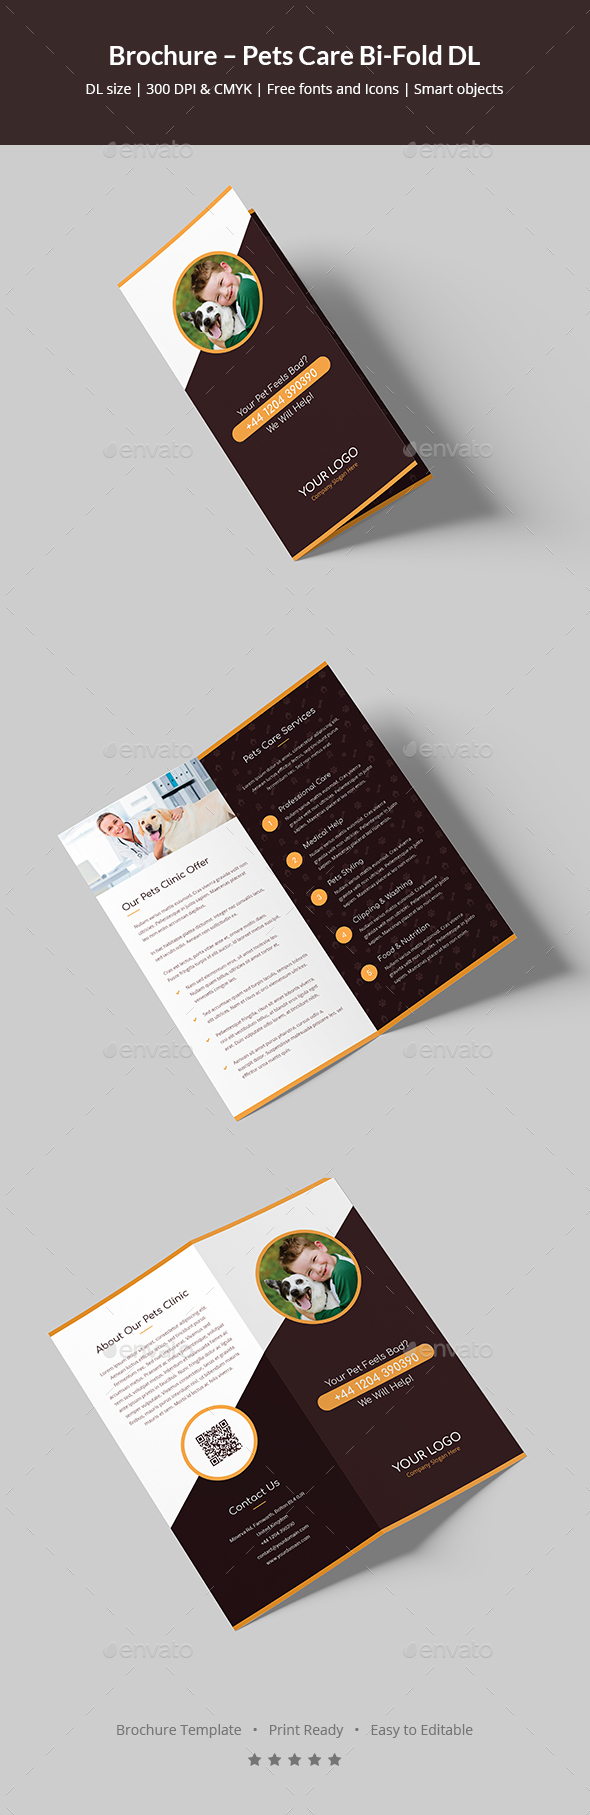 GraphicRiver Brochure Pets Care Bi-Fold DL 20693793